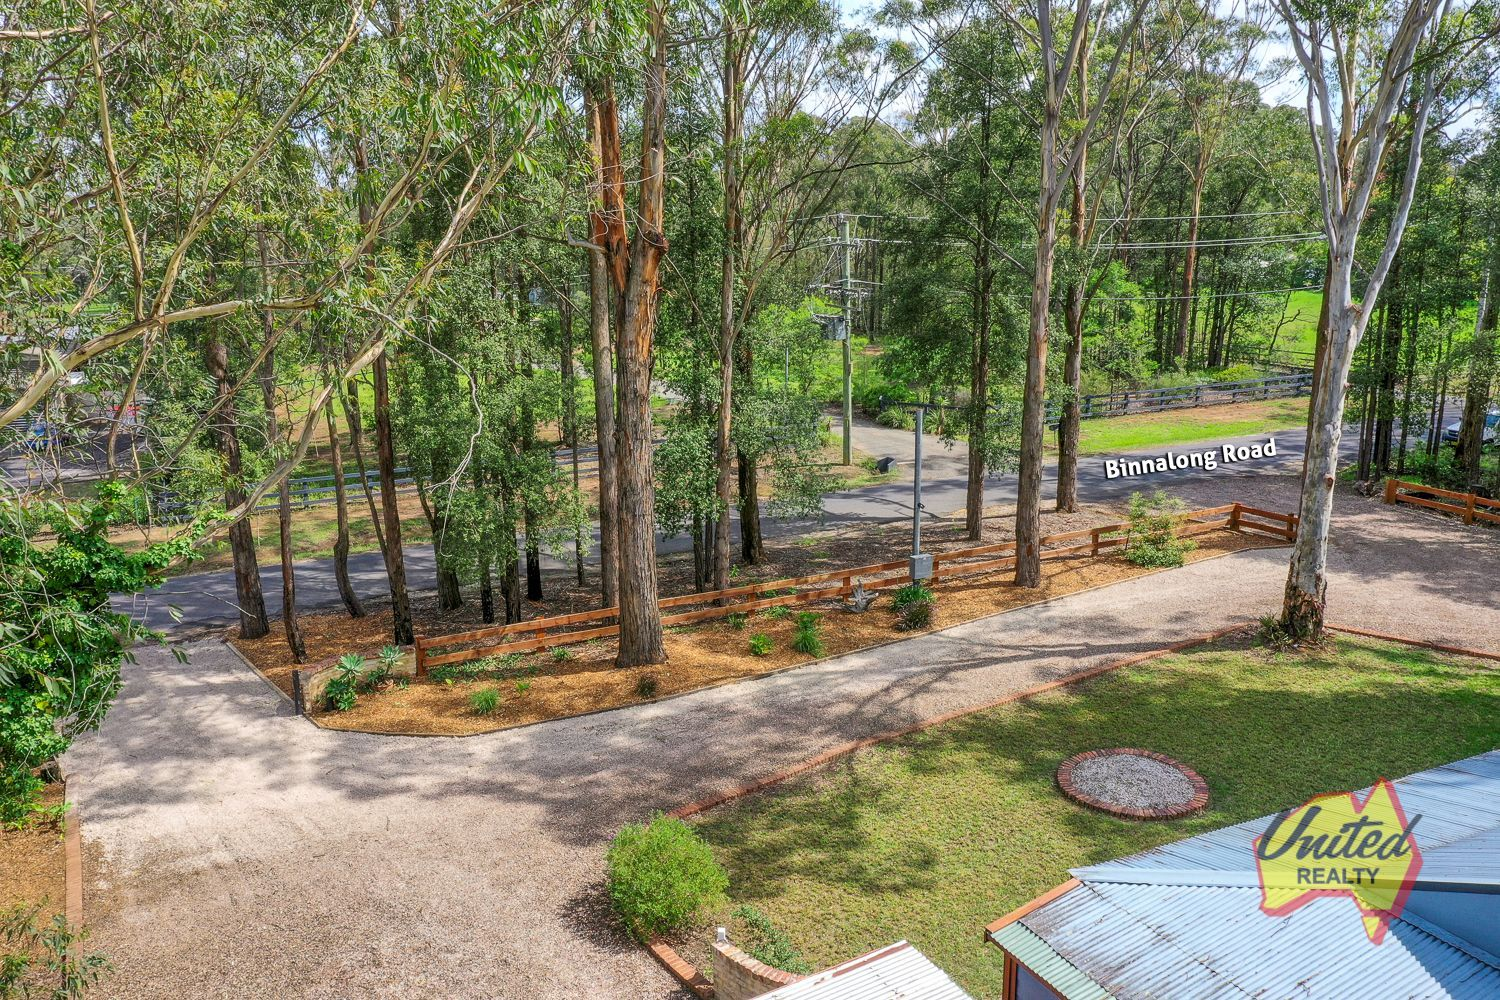 222 Binalong Road Belimbla Park 2570